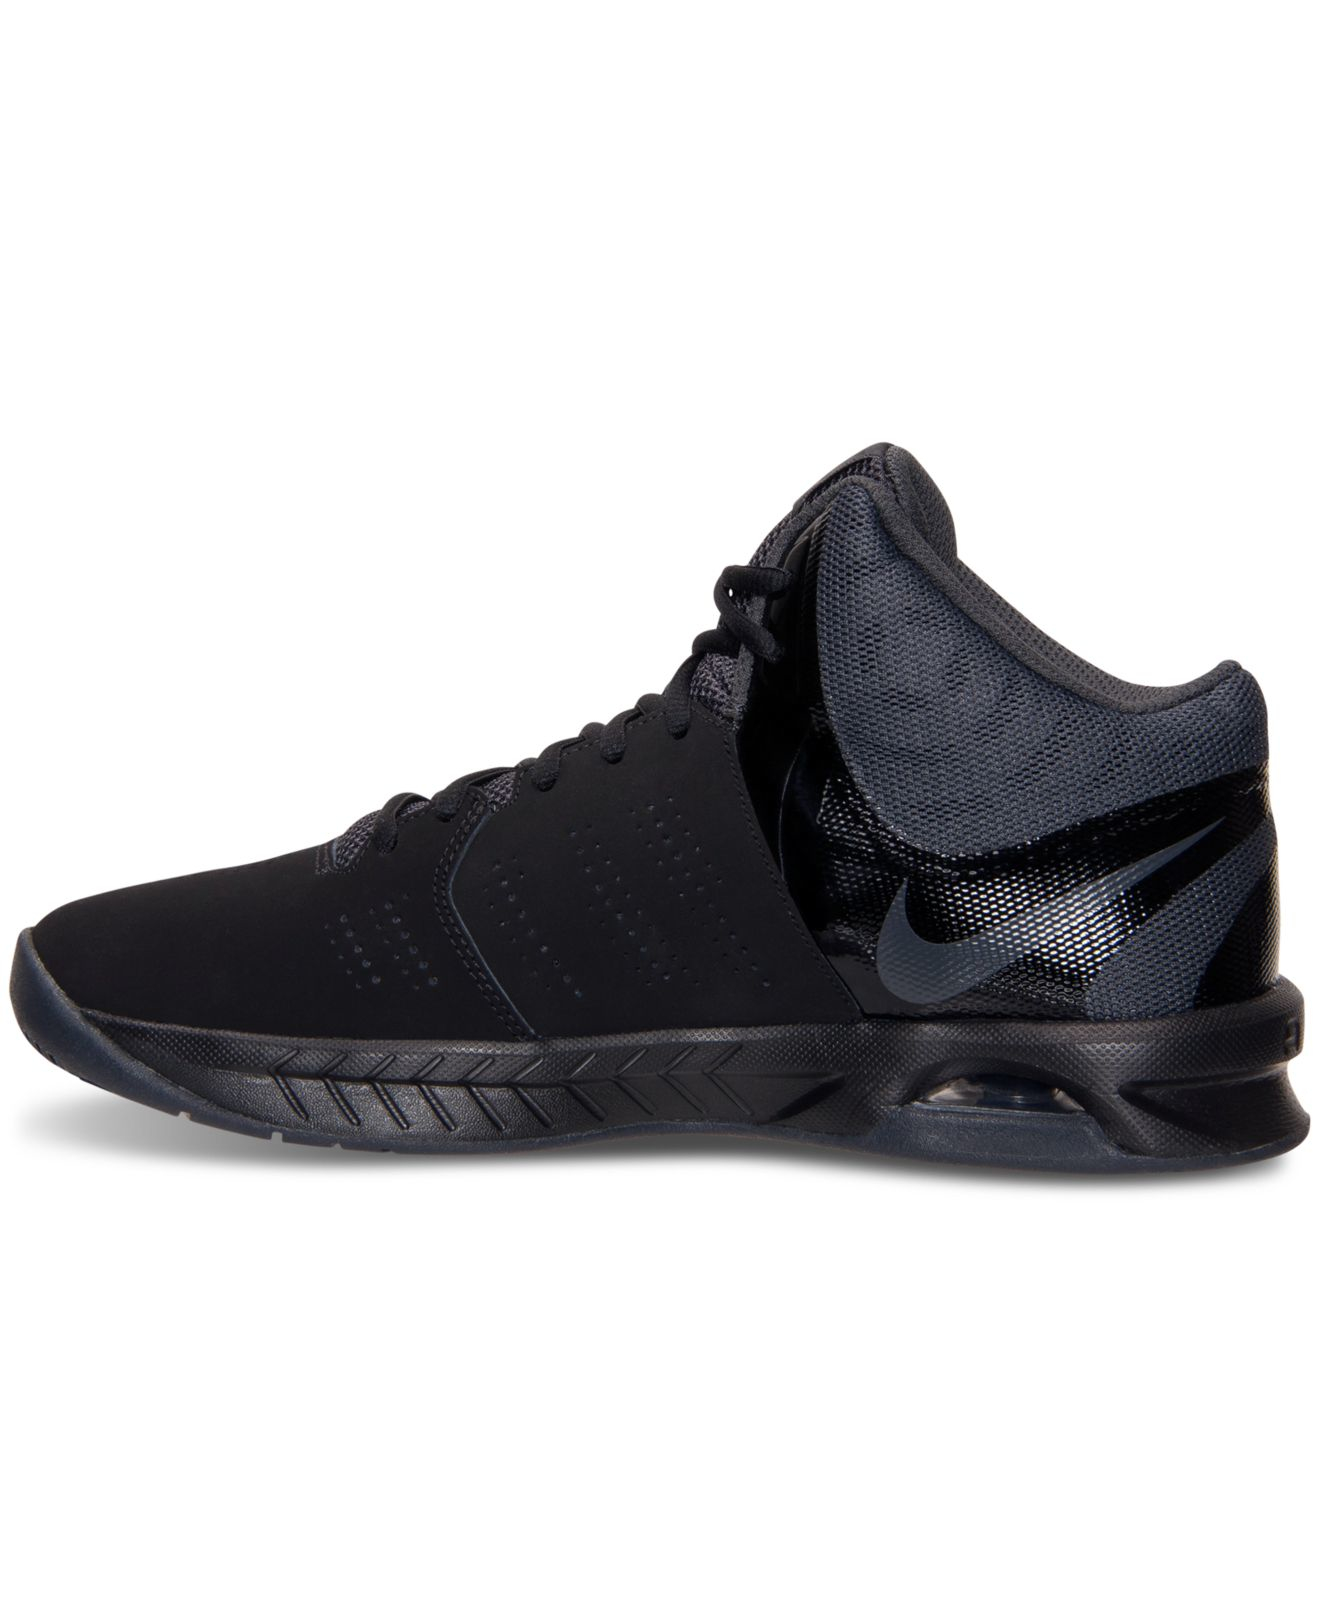 28801dfc09bd Lyst - Nike Men s Air Visi Pro Vi Nubuck Basketball Sneakers From ...